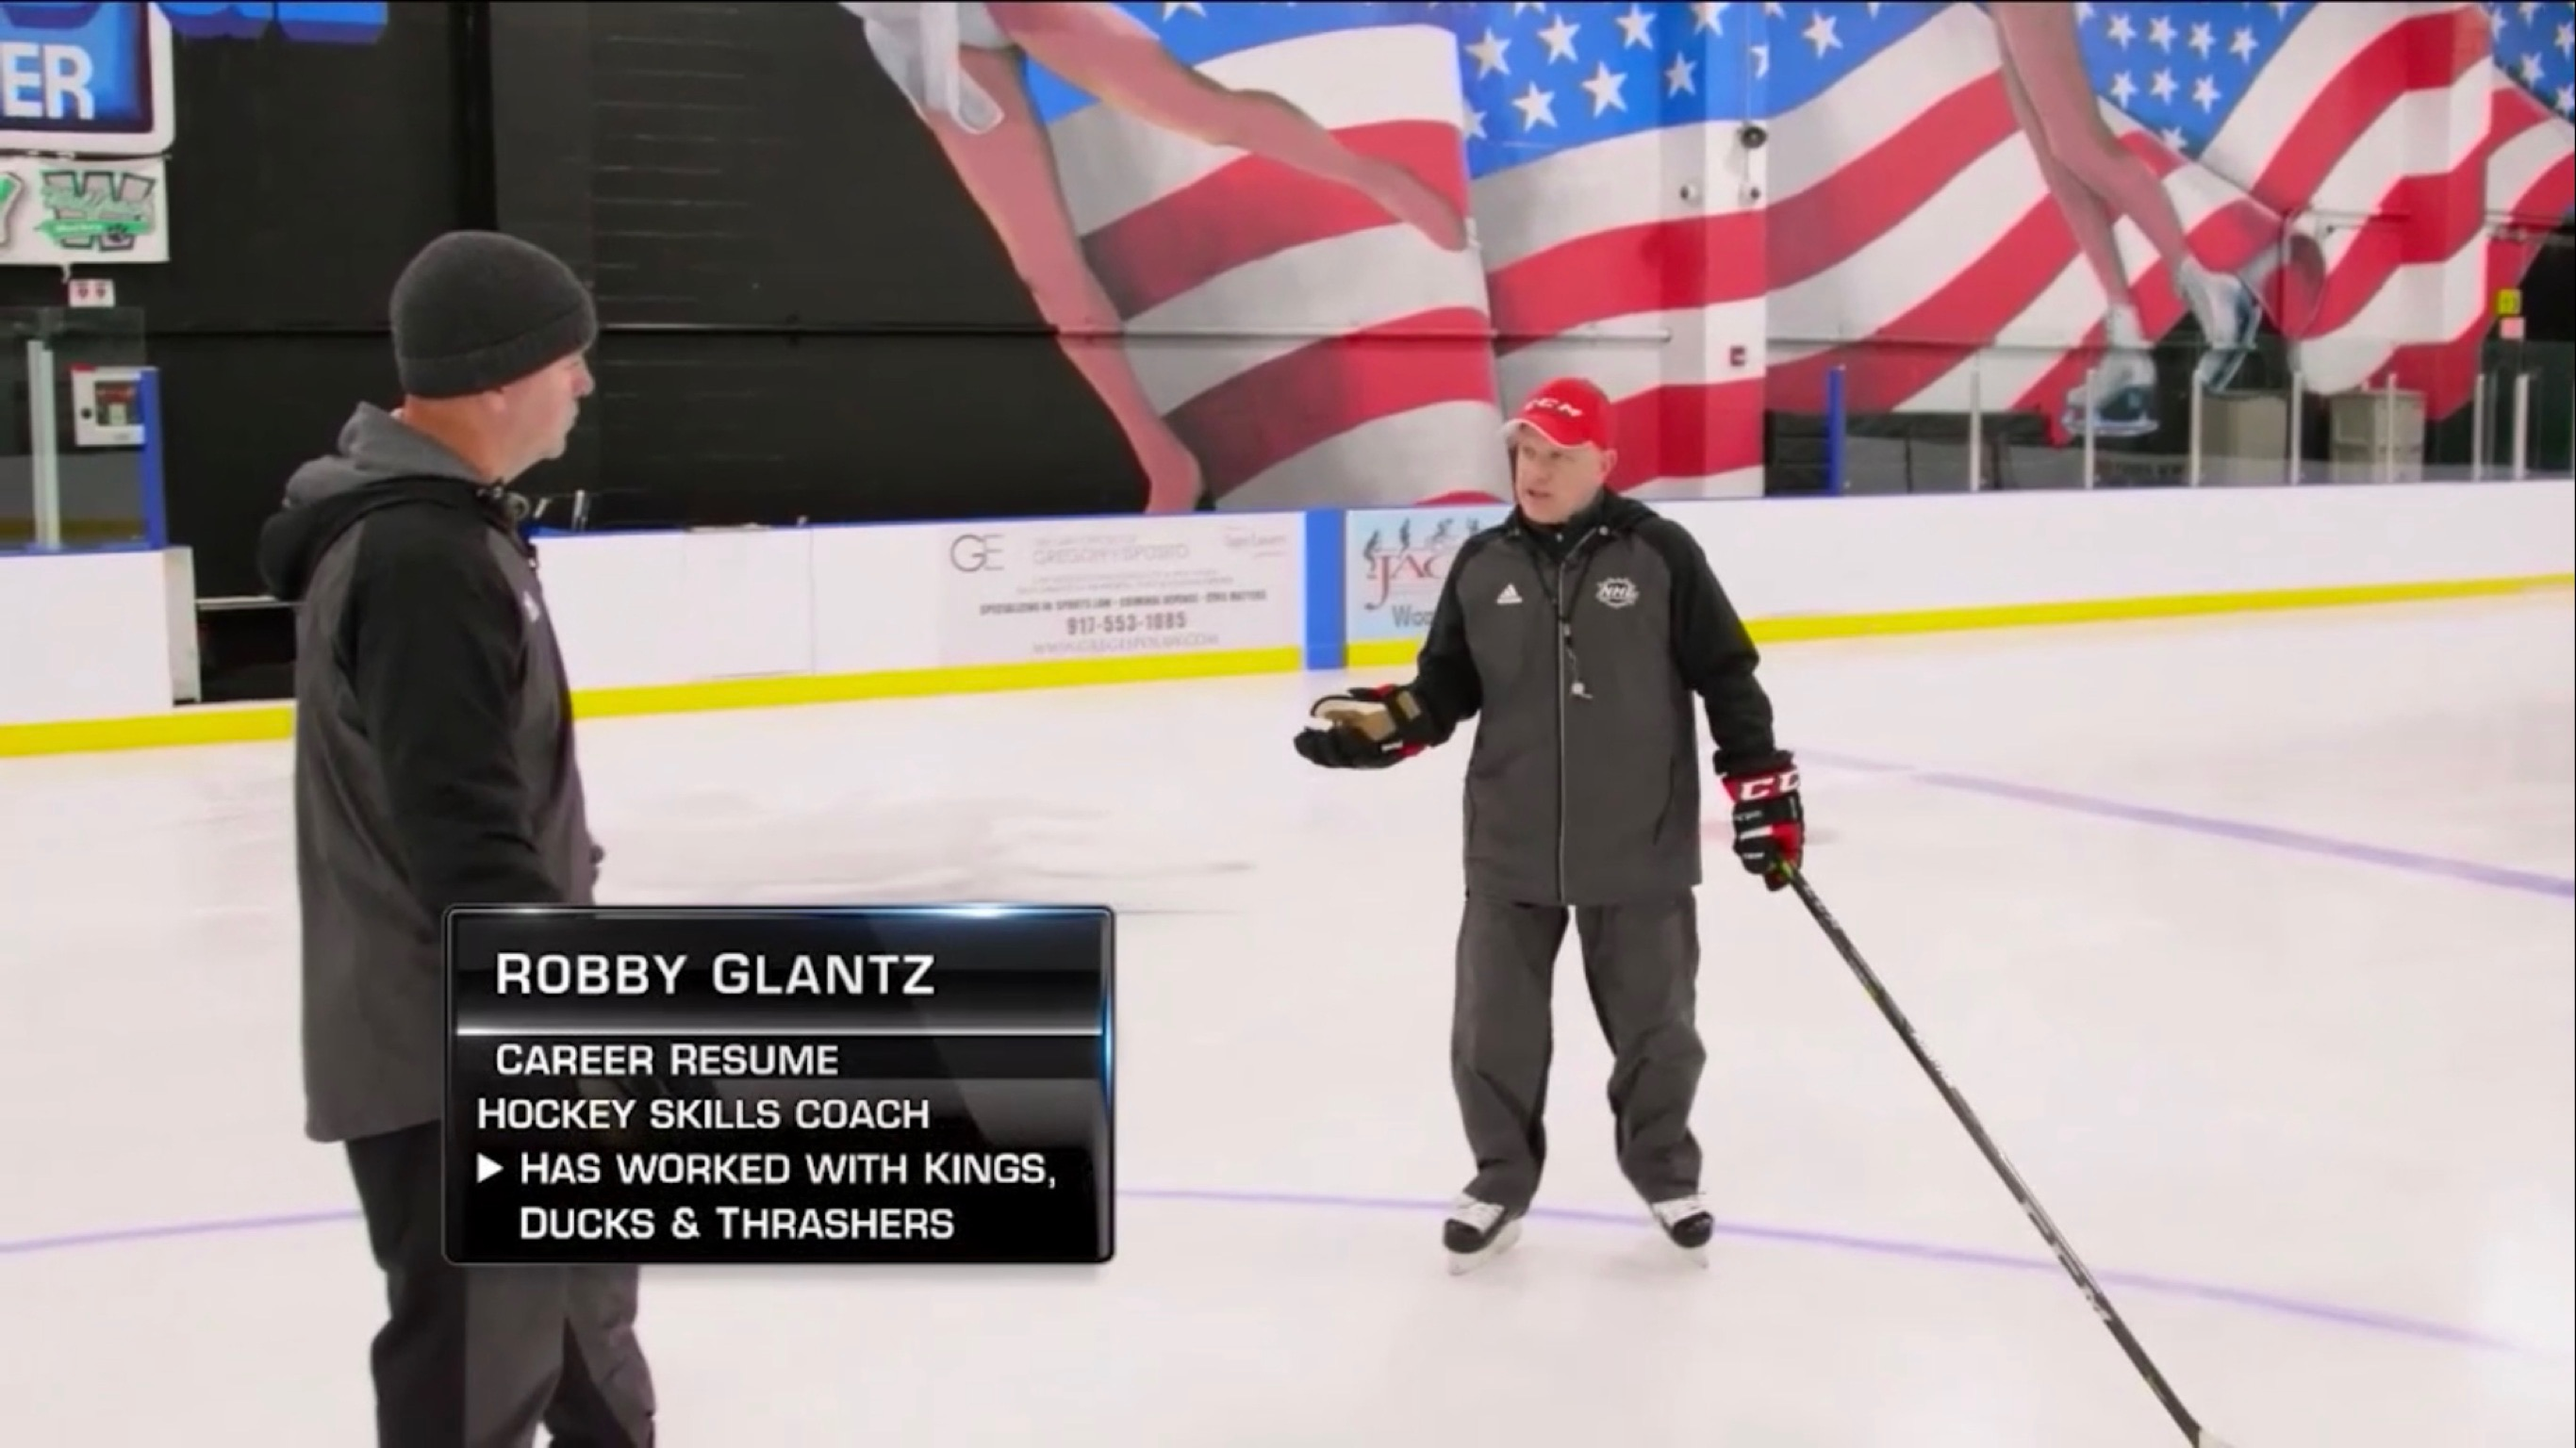 NHL Network – On-Ice Demo – 2/23/18 – Robby & Alex Tanguay Show the Open Feet/Hips Move!